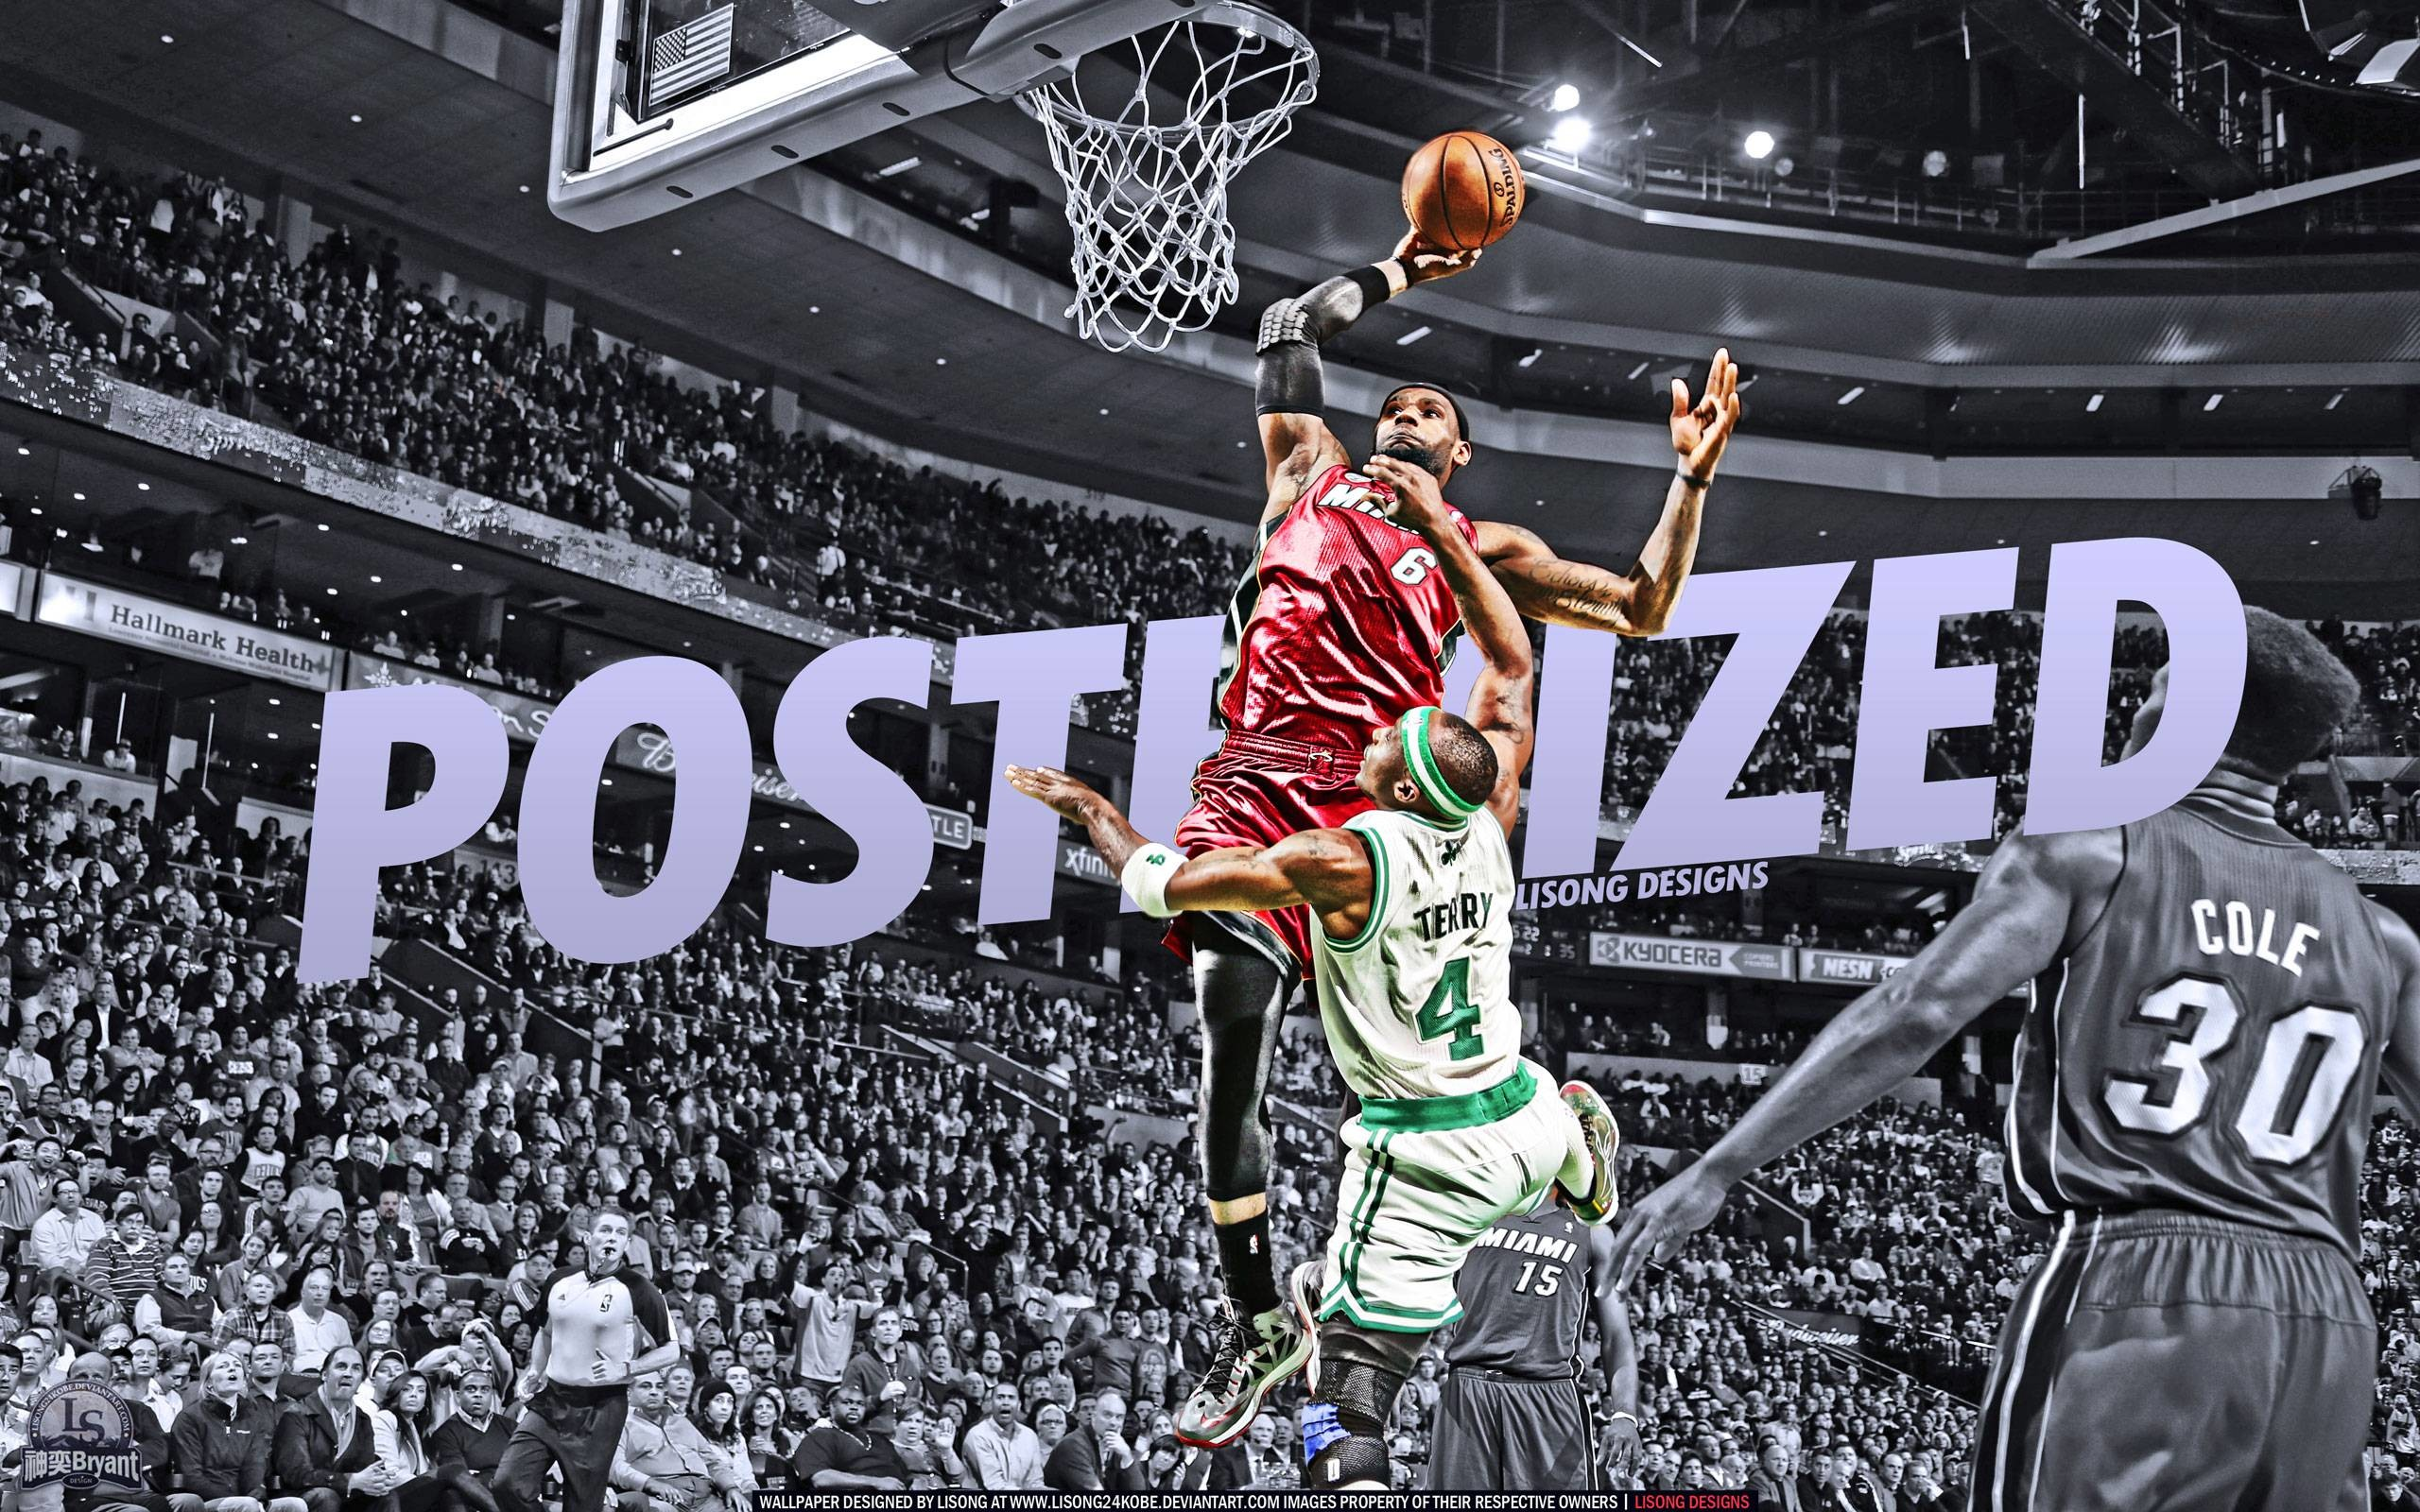 Great Wallpaper Mac Lebron James - 492537-gorgerous-lebron-james-dunking-wallpaper-2560x1600  Pictures_403310.jpg